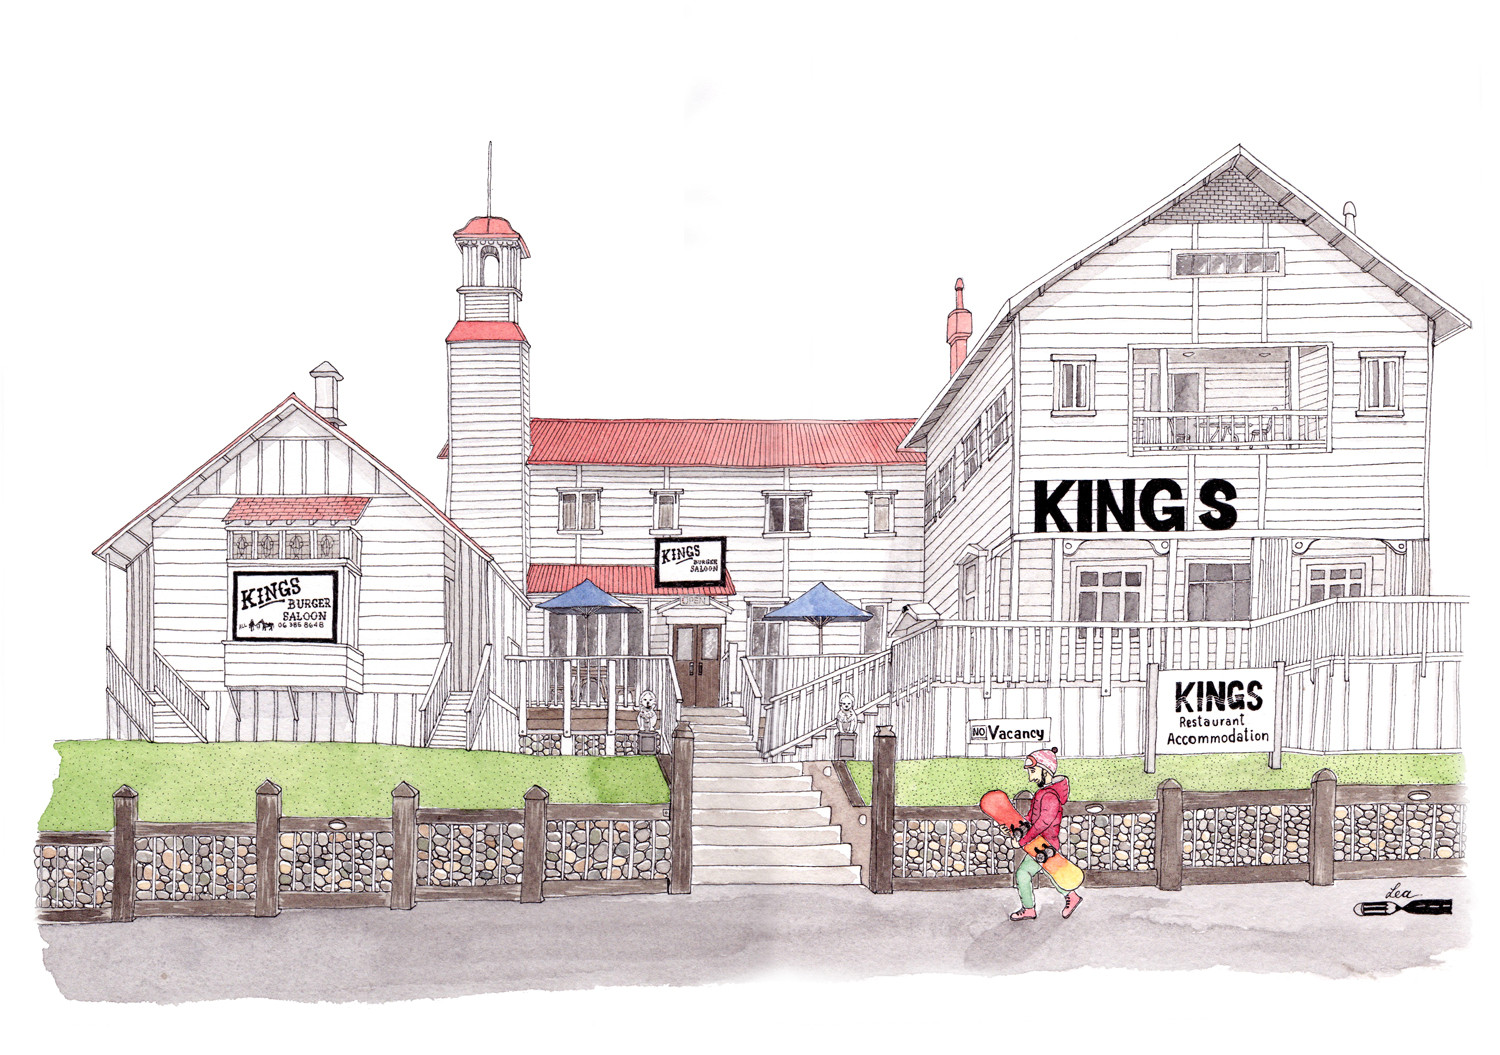 Kings Hotel - Ohakune, New Zealand